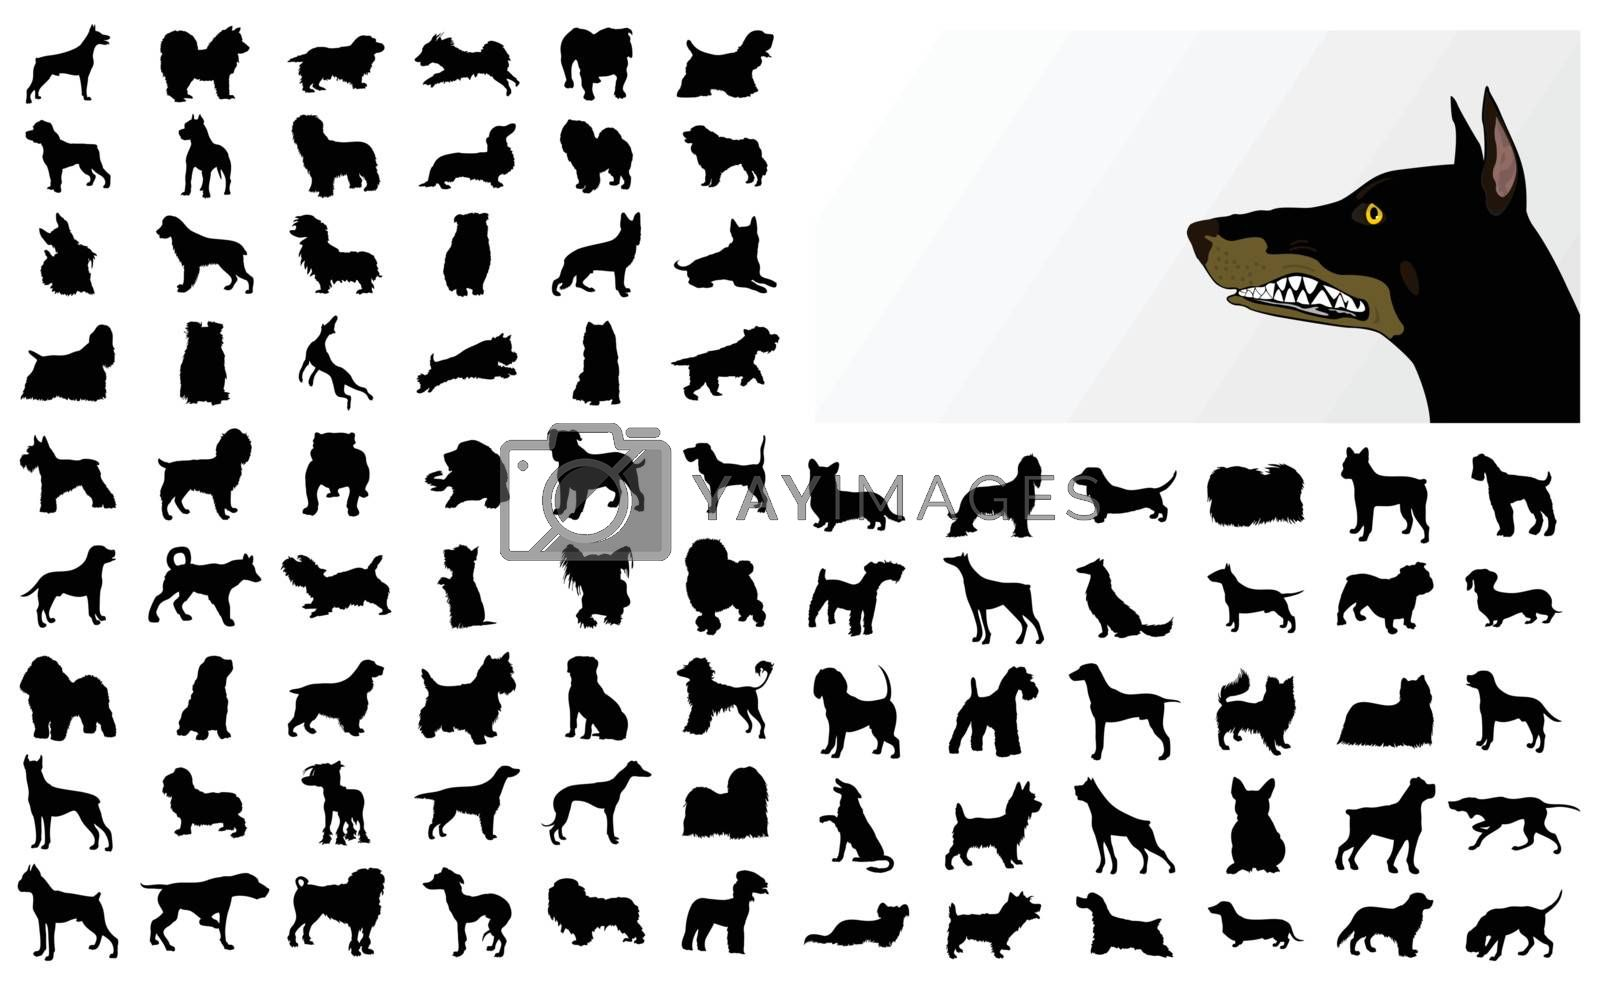 Black silhouettes of different breeds of dog. A vector illustration